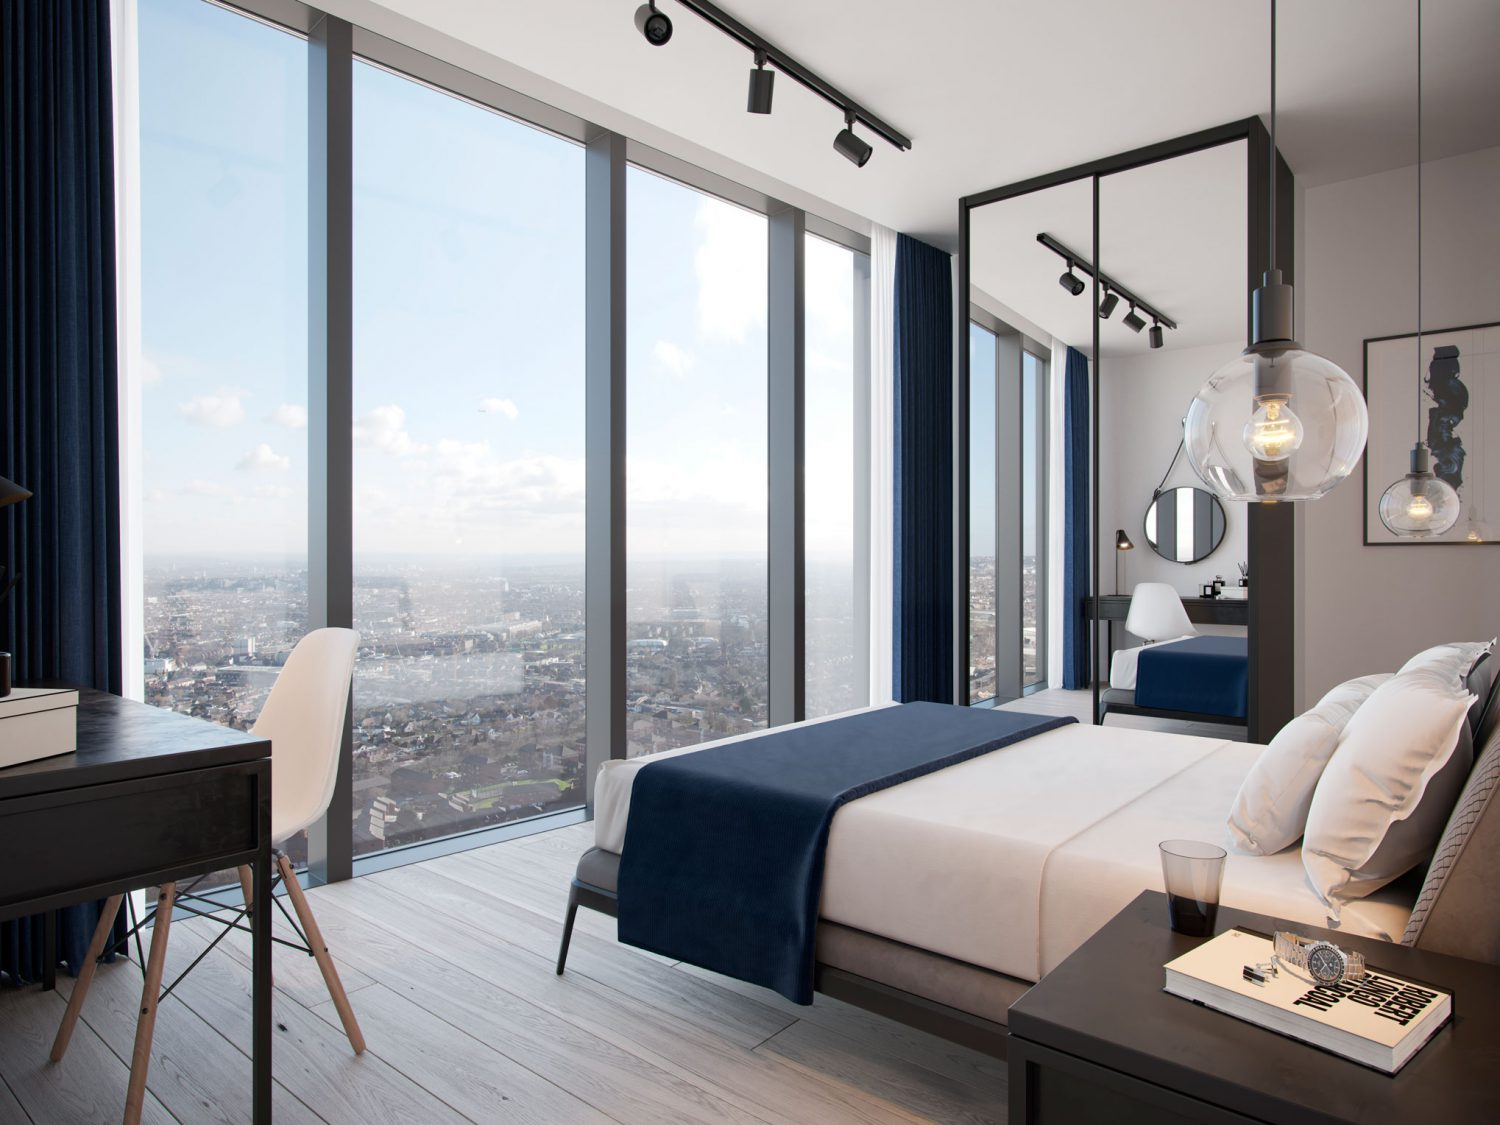 City and Docklands One West Point Interior Bedroom View